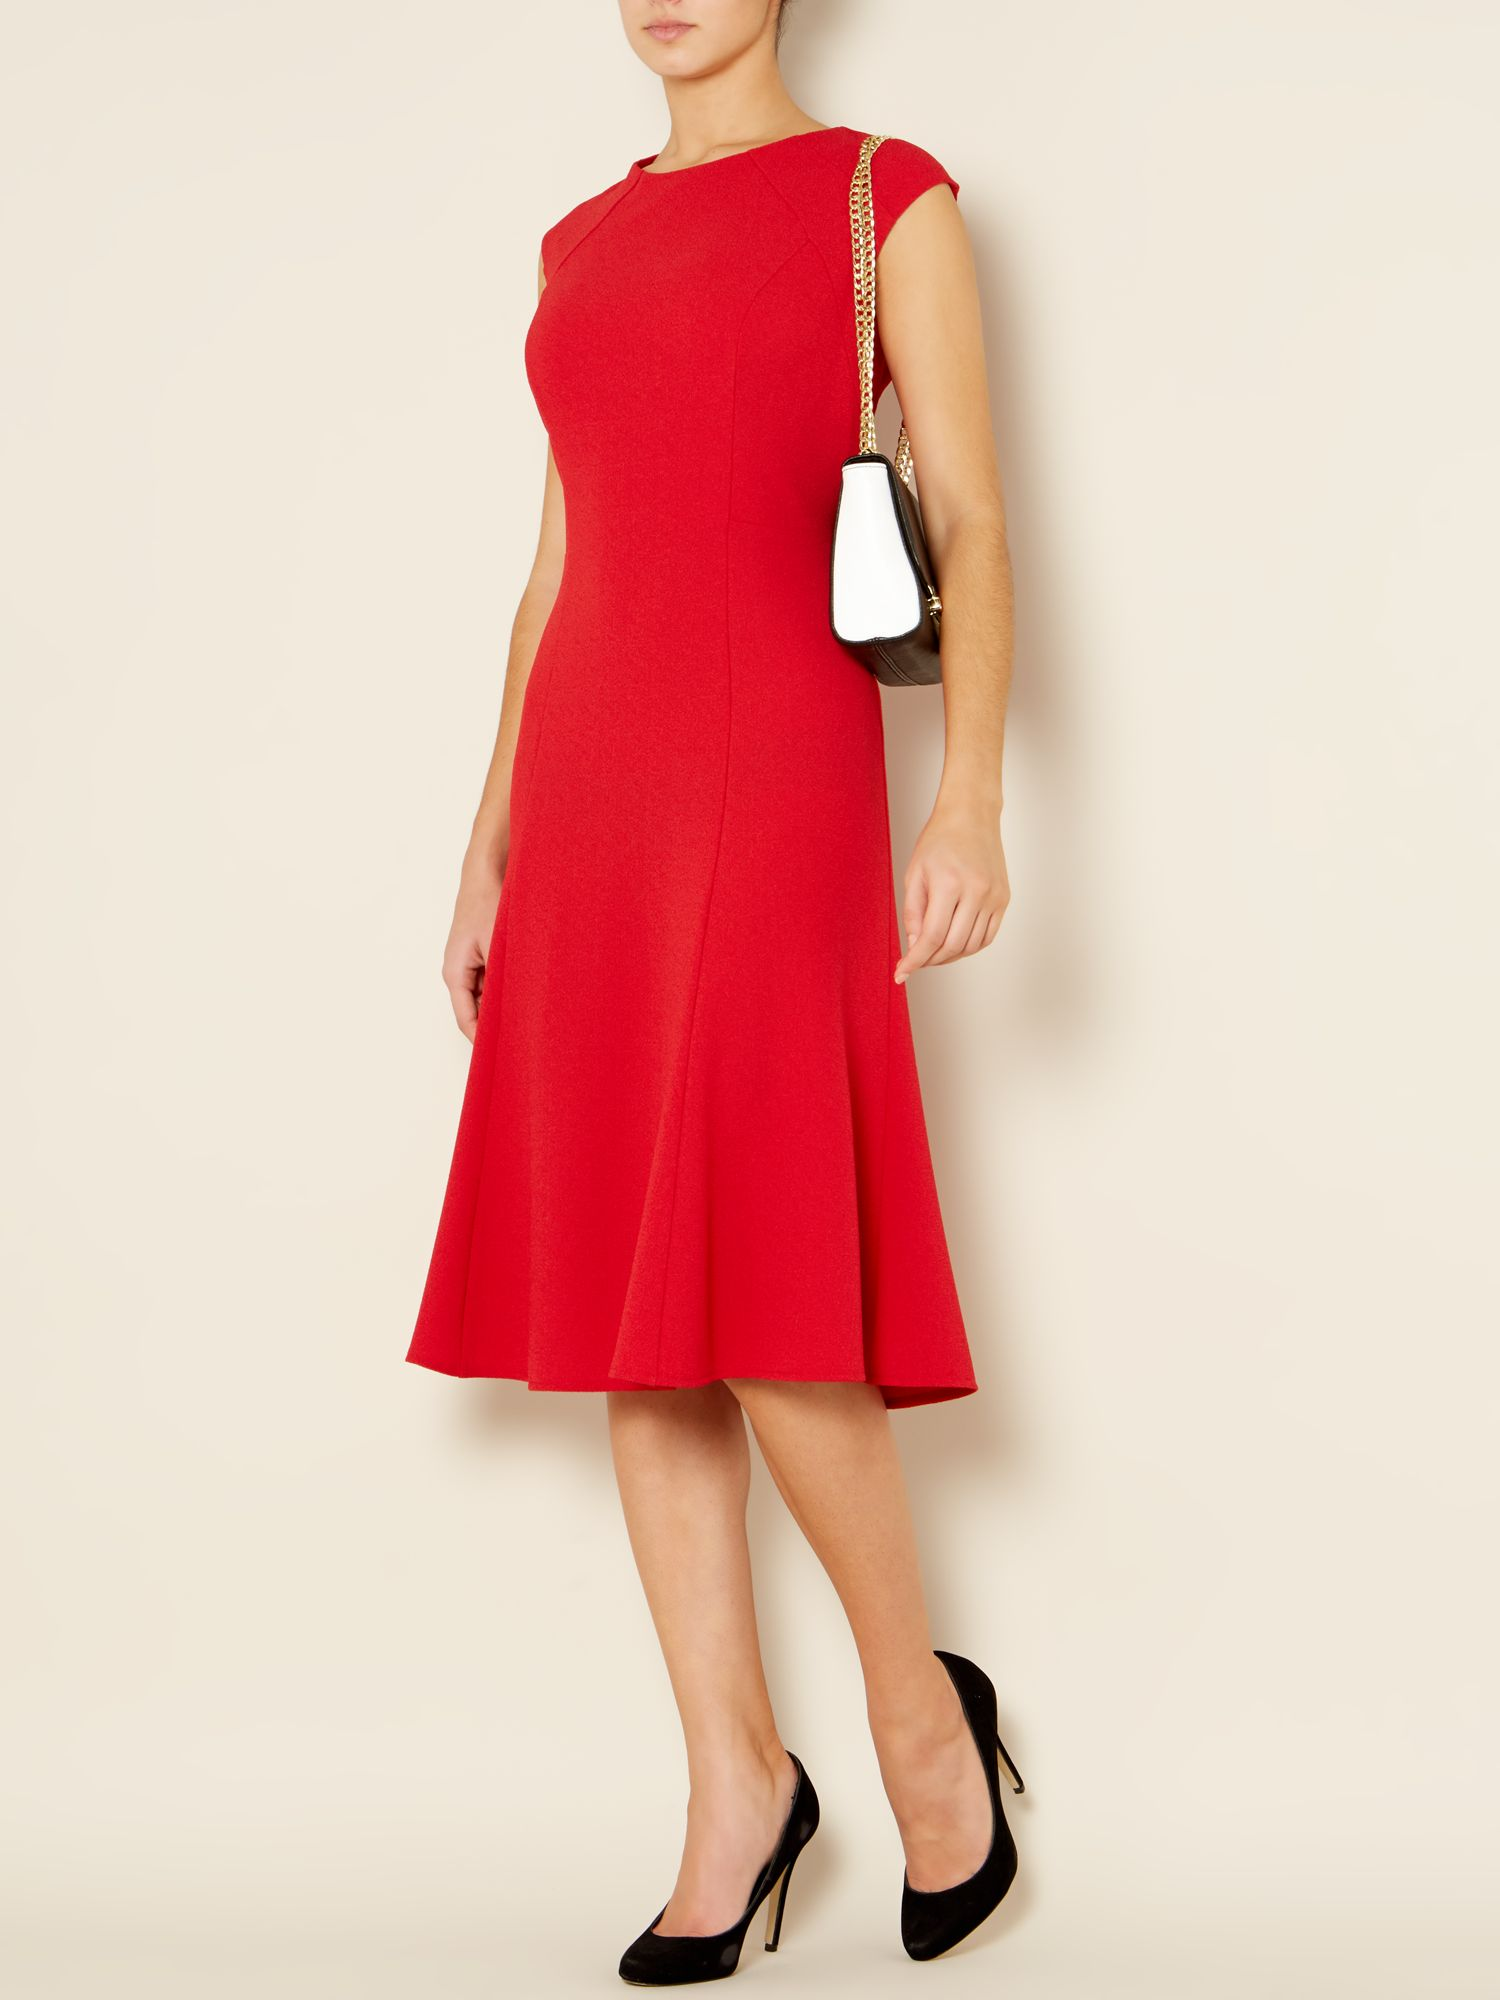 Eileen crepe full skirted dress